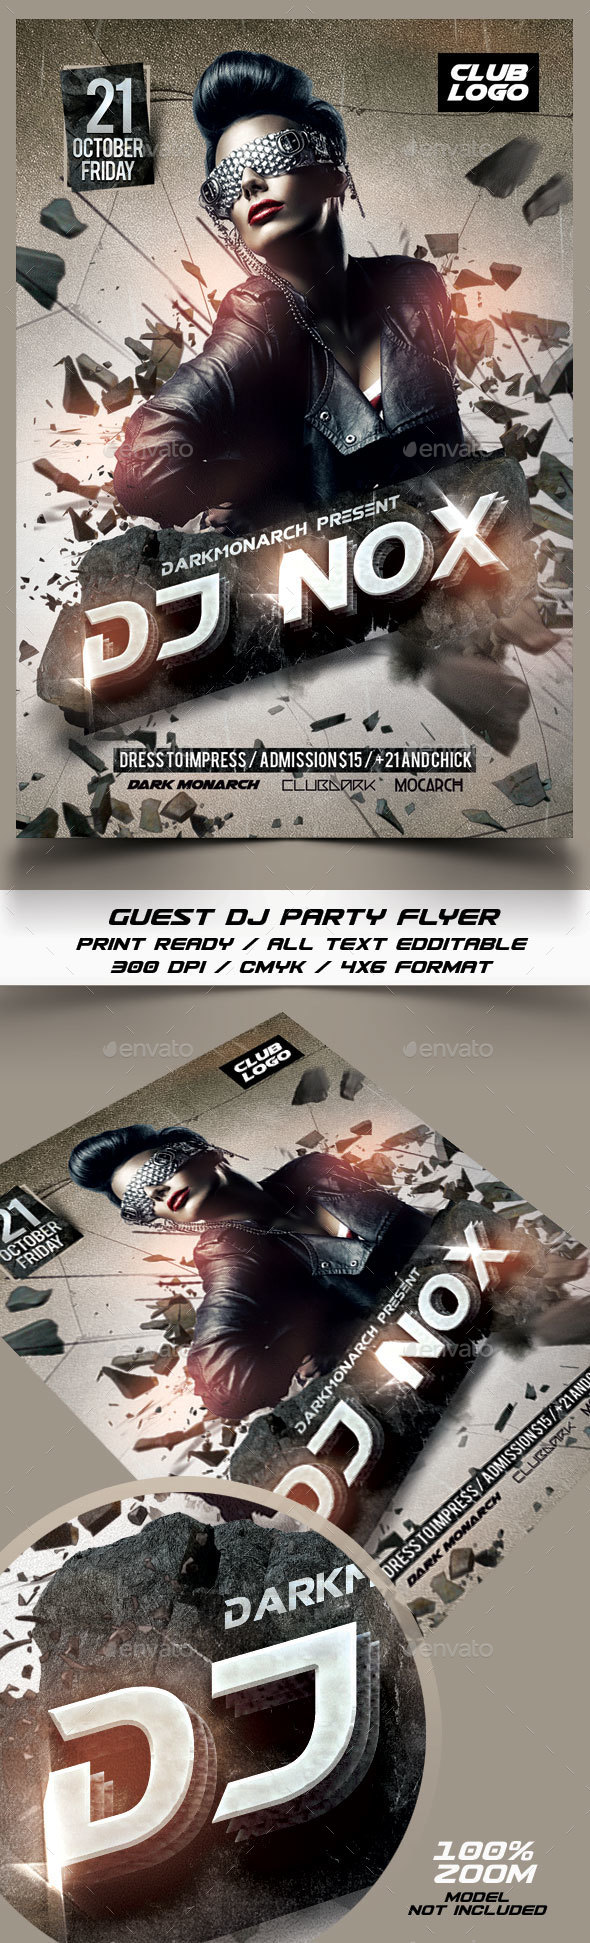 Dj Nox Guest Flyer Template - Events Flyers